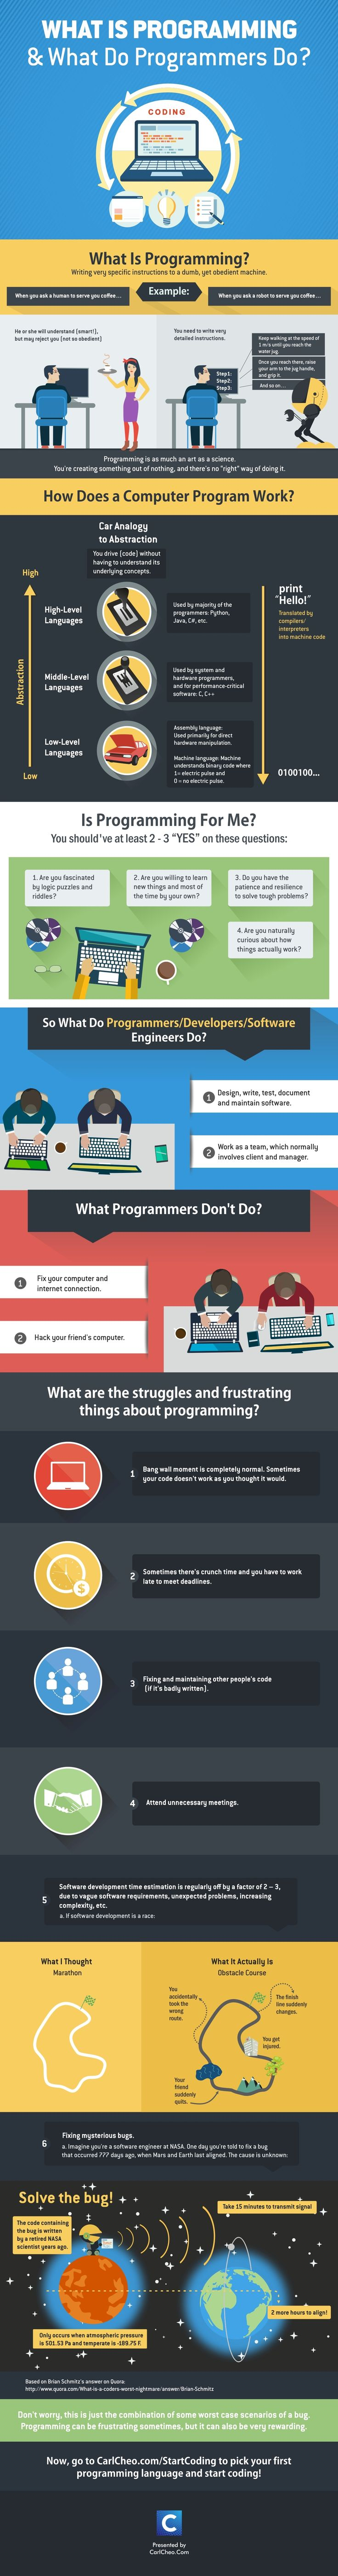 Best Programming Language - YouTube